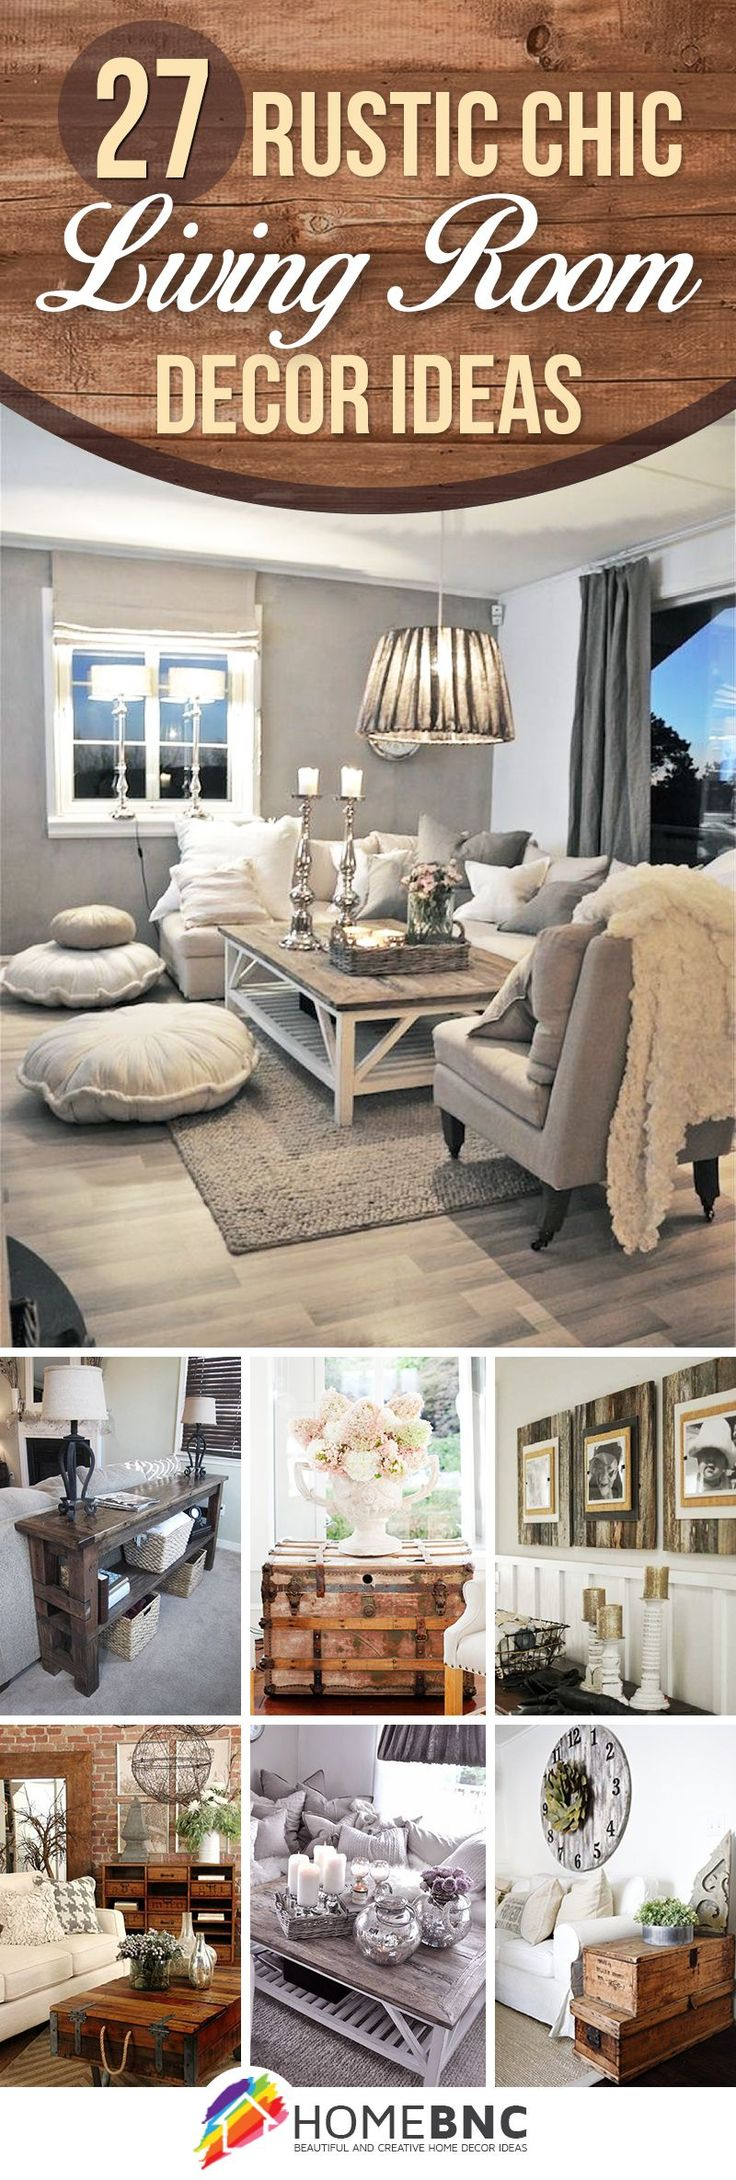 Rustic Chic Living Room Ideas